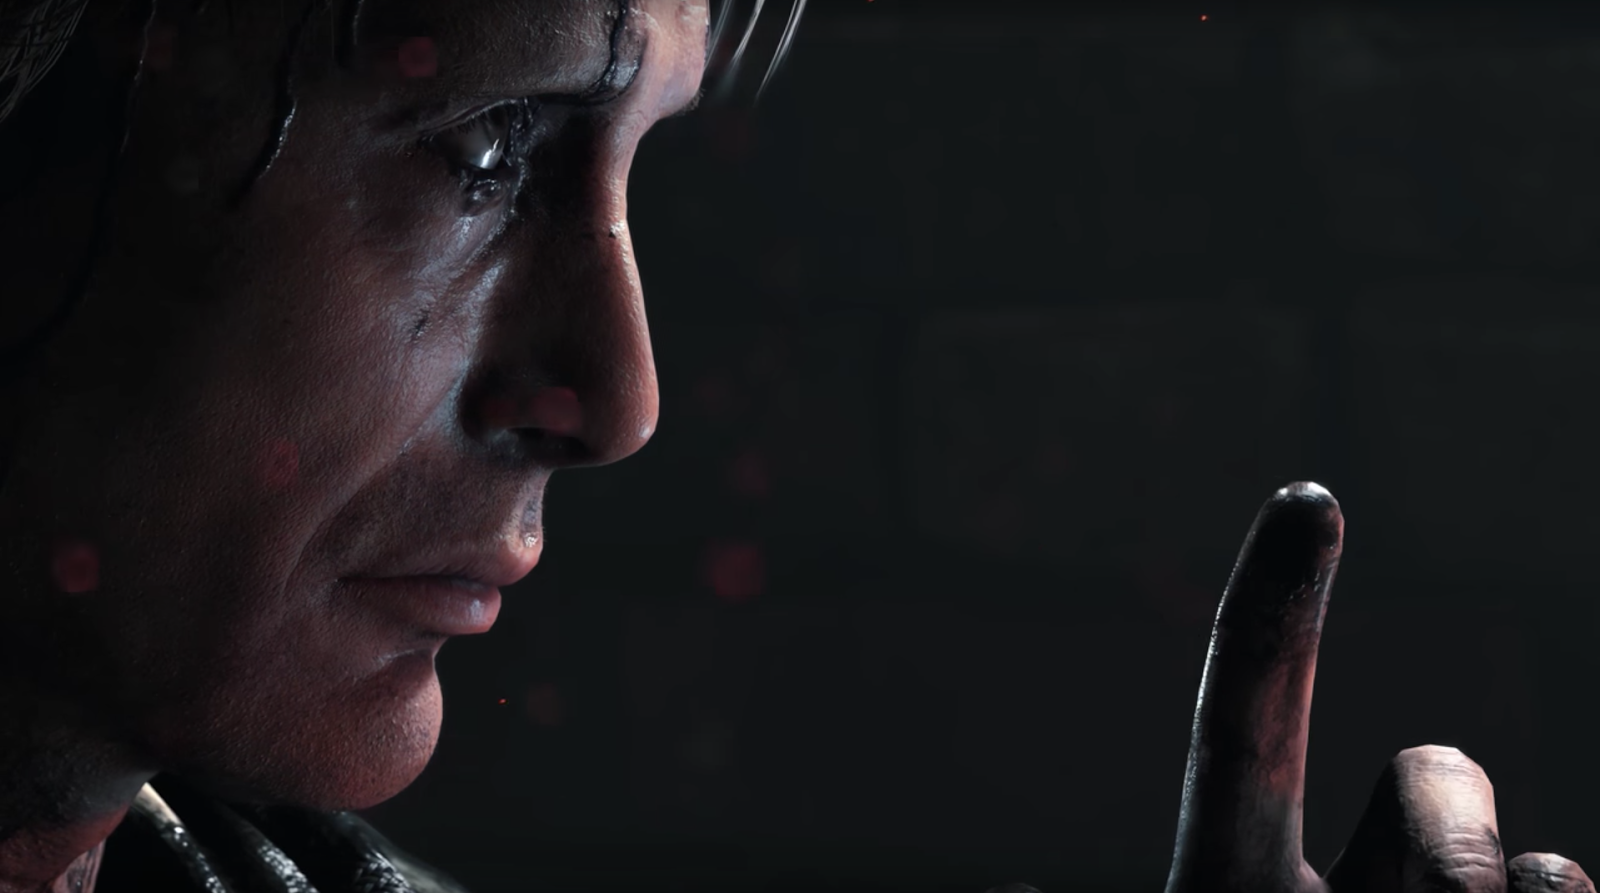 Hannibal Fans Are Psyched To See Mads Mikkelsen In Death Stranding